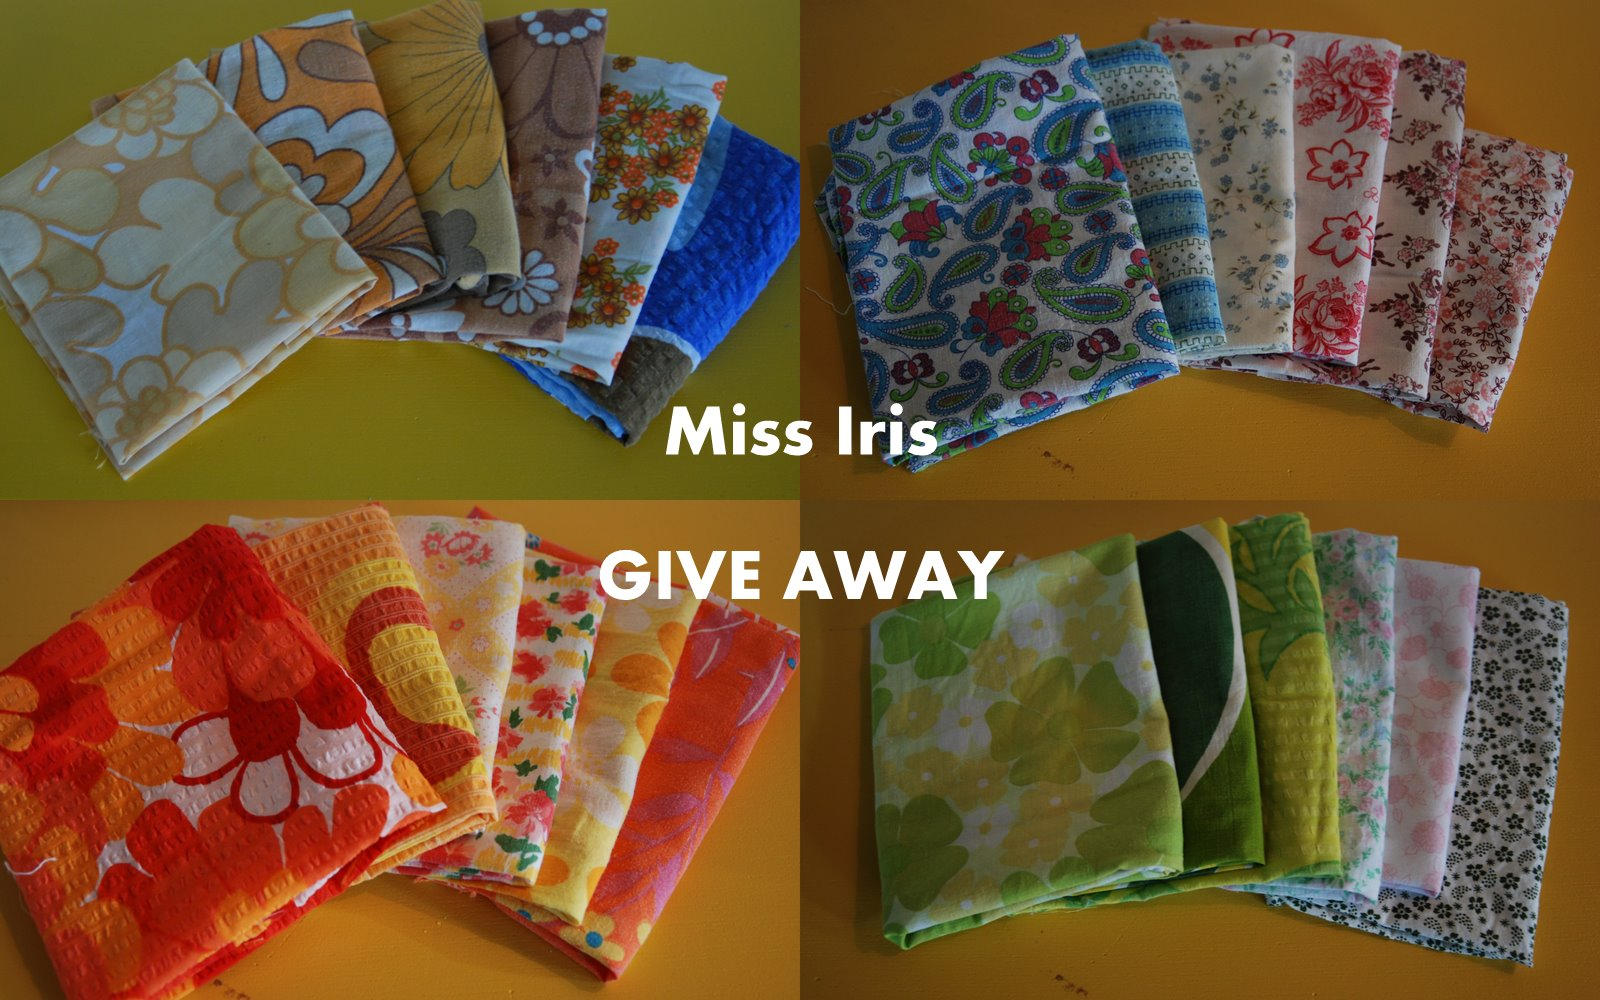 Give away fra Miss Iris